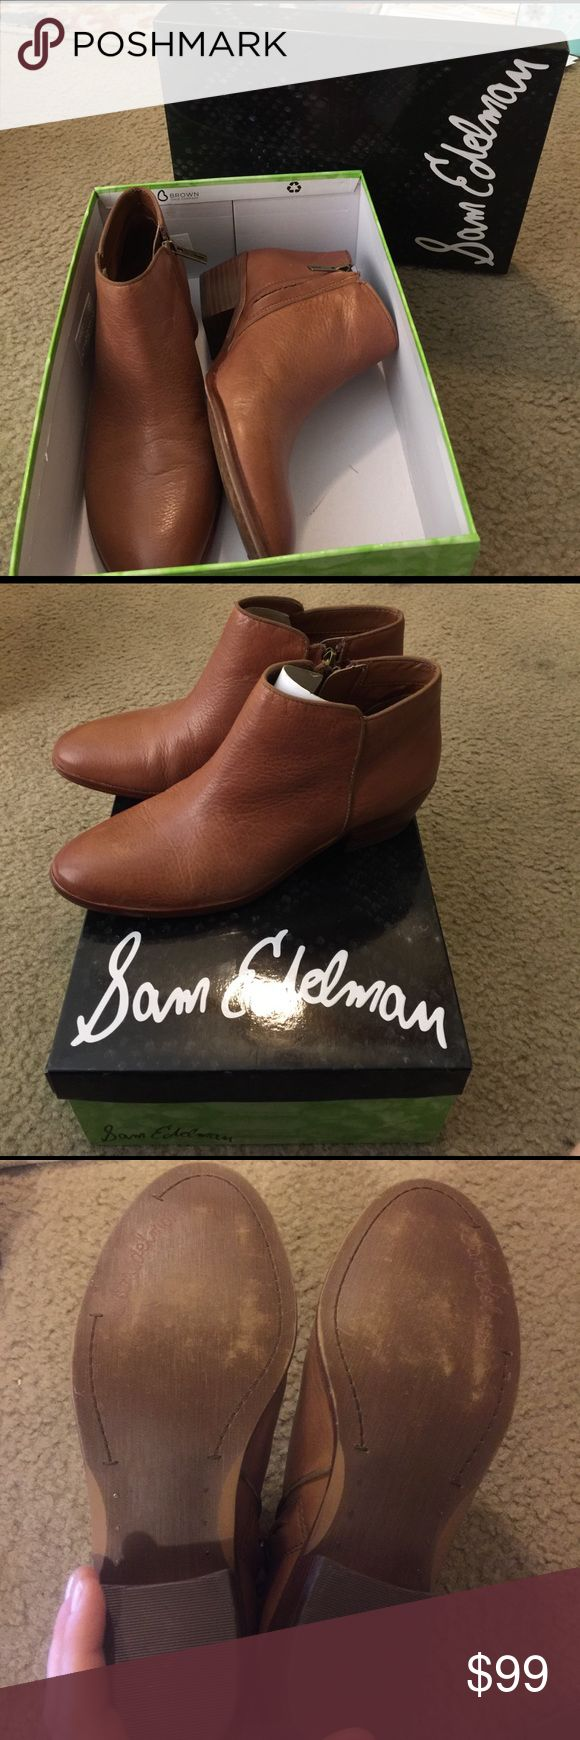 Sam Edelman brown leather boots Size 8. Only worn once (slight scuffs on bottom). Beautiful leather boots, just a size too big. Sam Edelman Shoes Ankle Boots & Booties